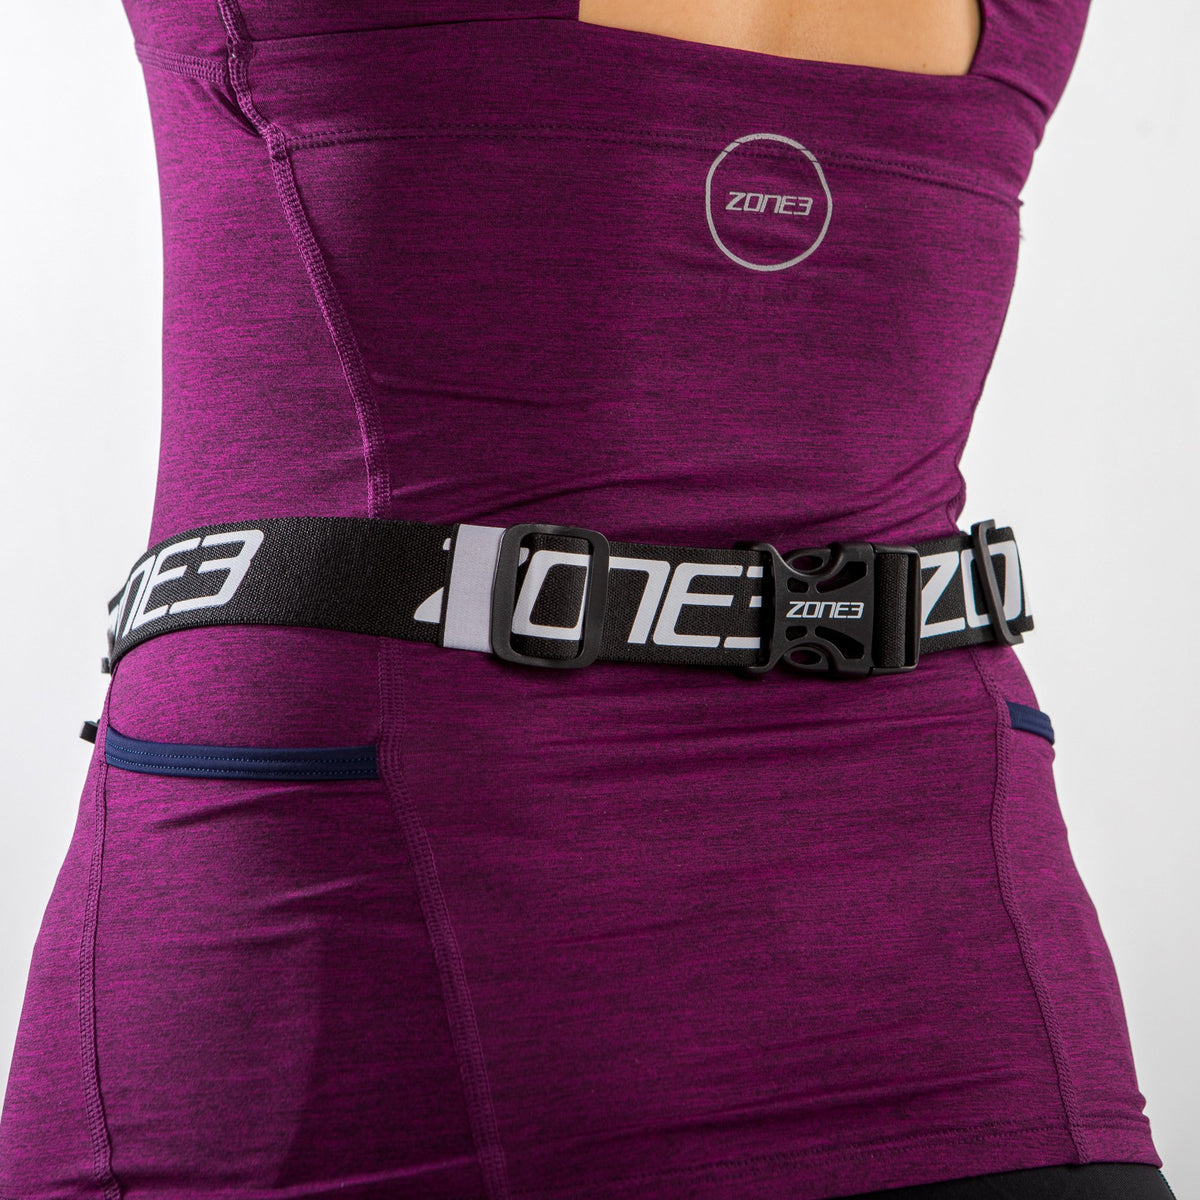 Endurance Number Belt with Neoprene Fuel Pouch and Energy Gel Storage clip